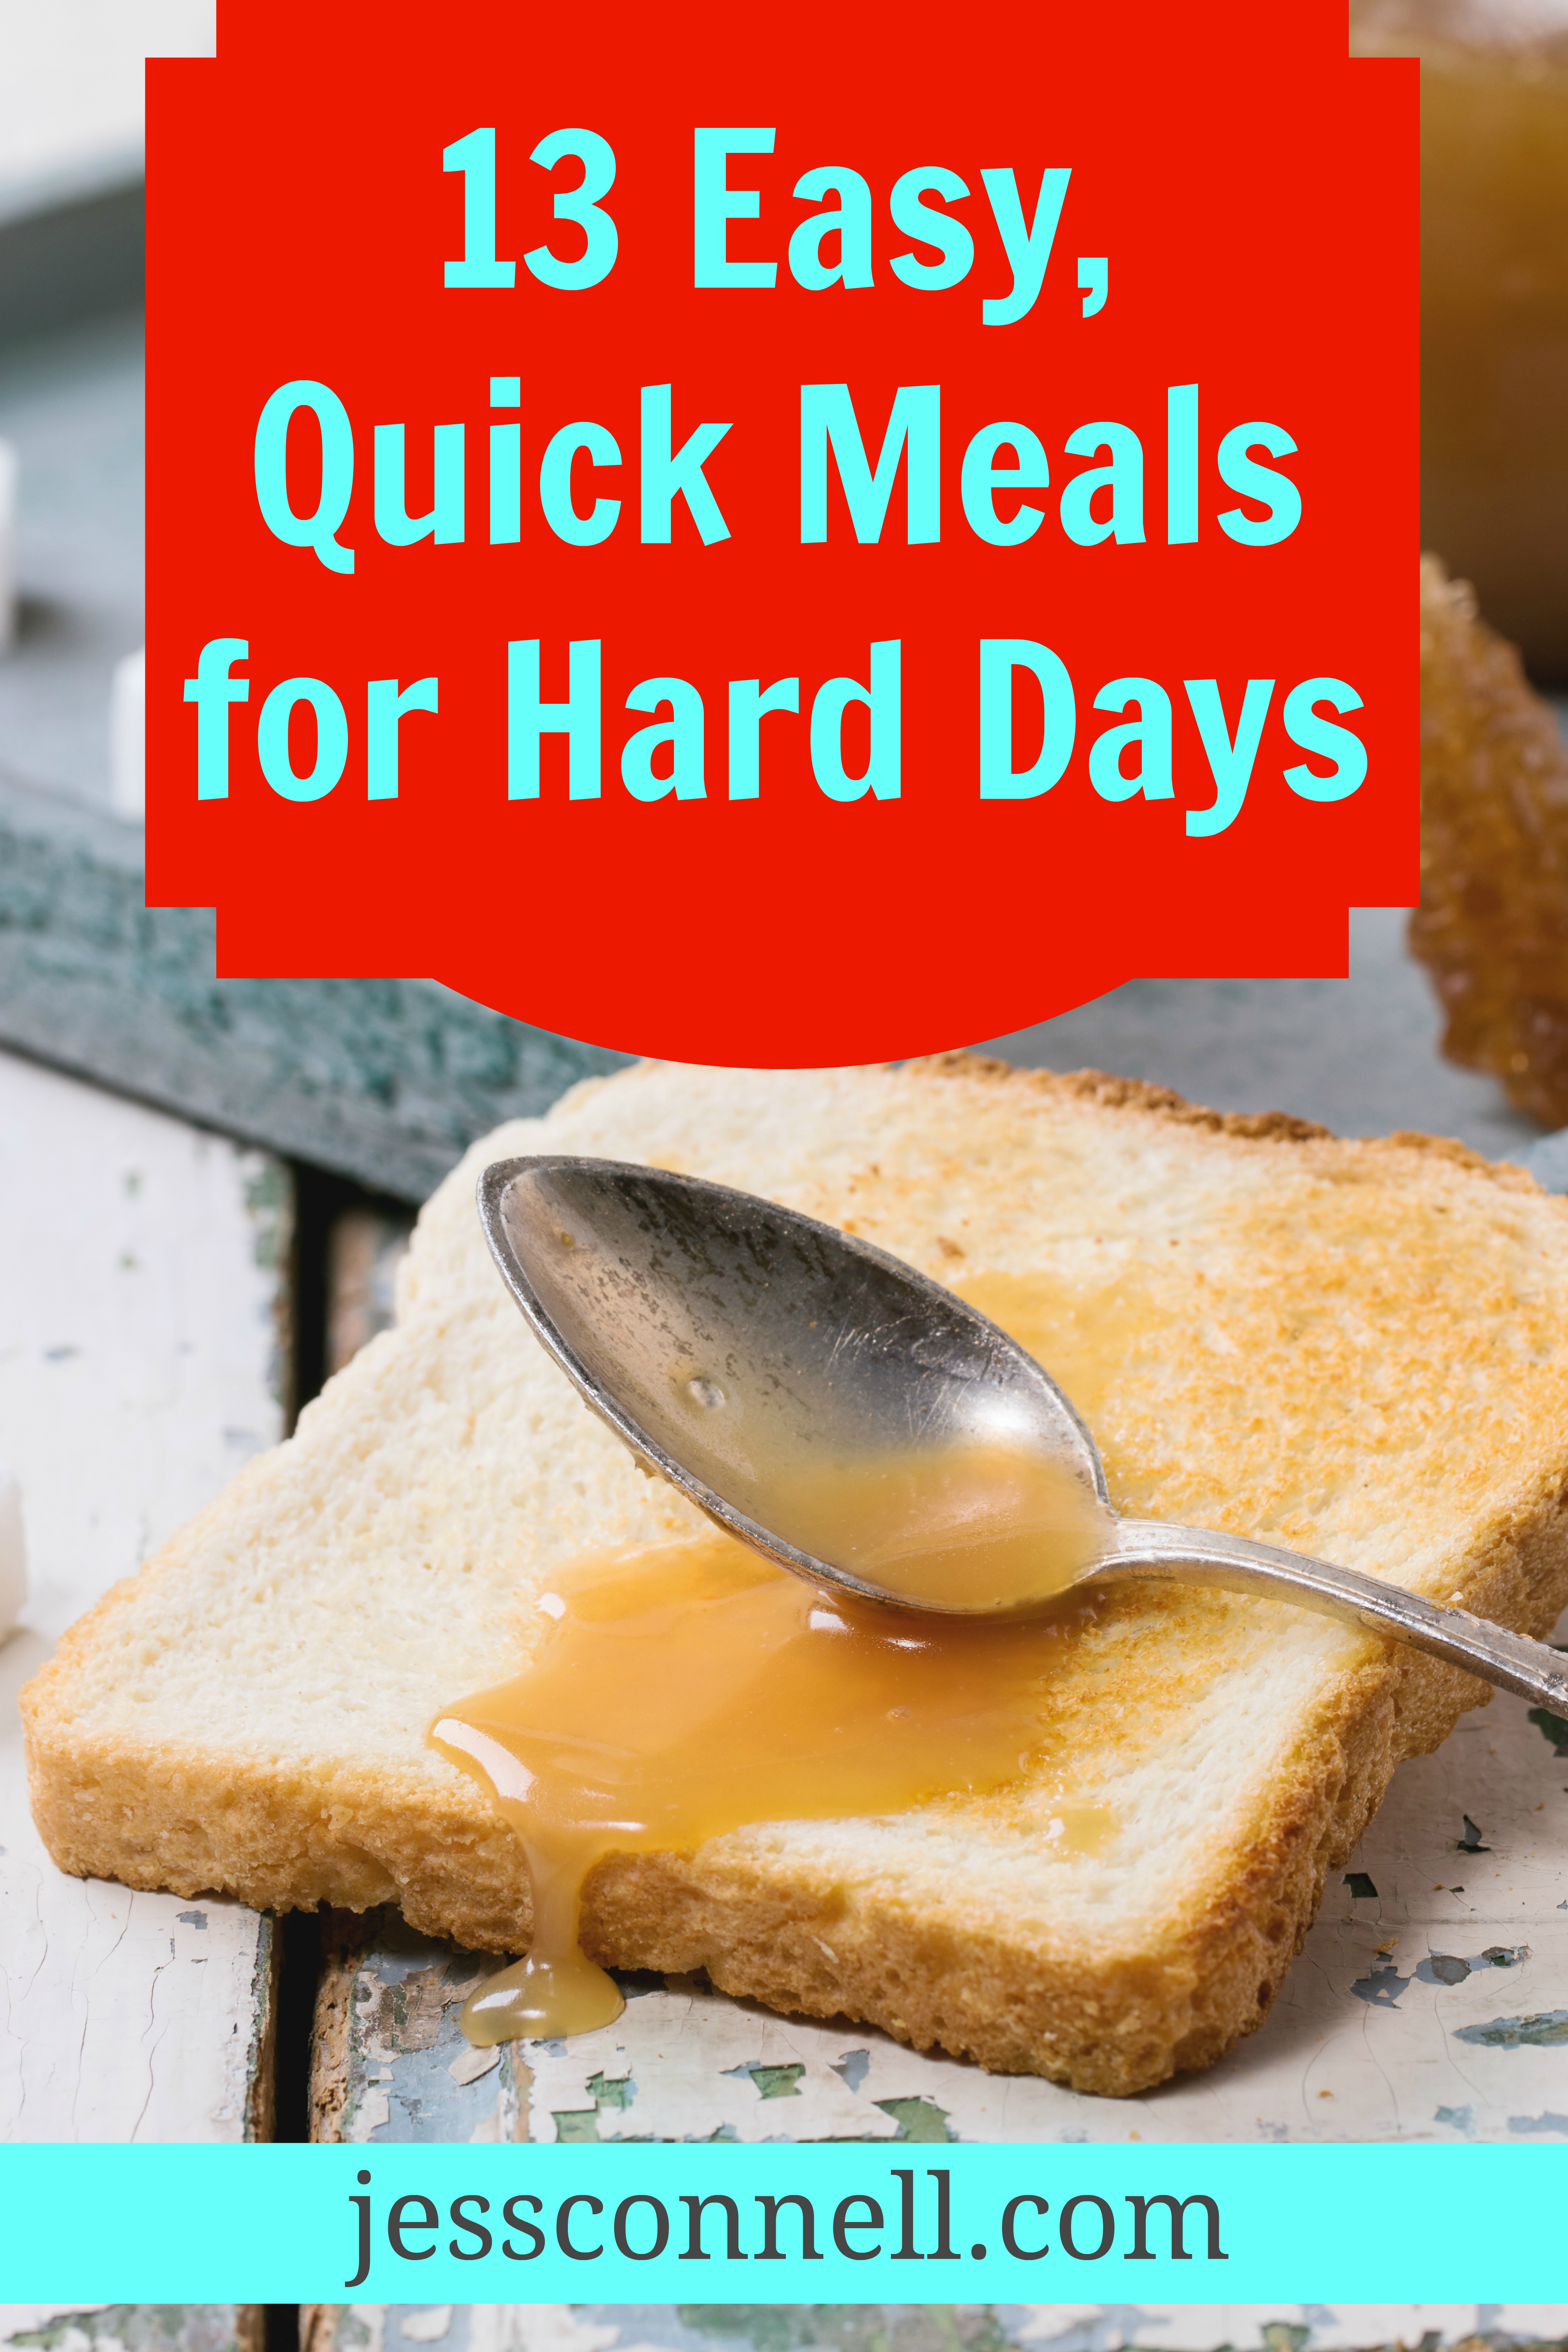 13 Easy, Quick Meals for Hard Days // jessconnell.com